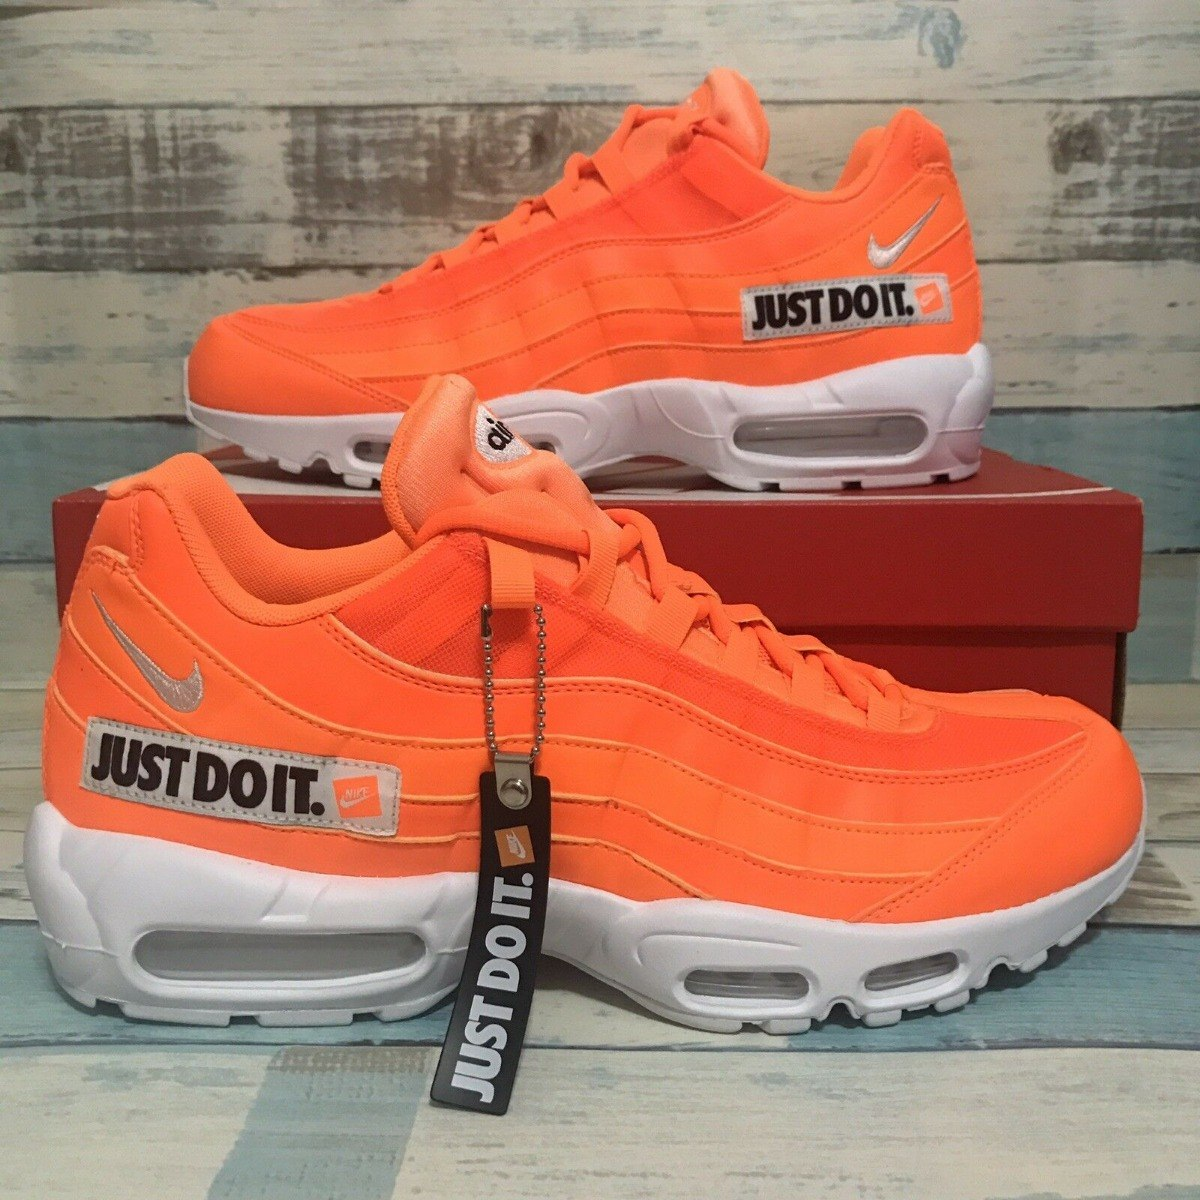 premium selection aa098 24ad6 zapatillas nike air max 95 se just do it, a pedido usa. Cargando zoom.